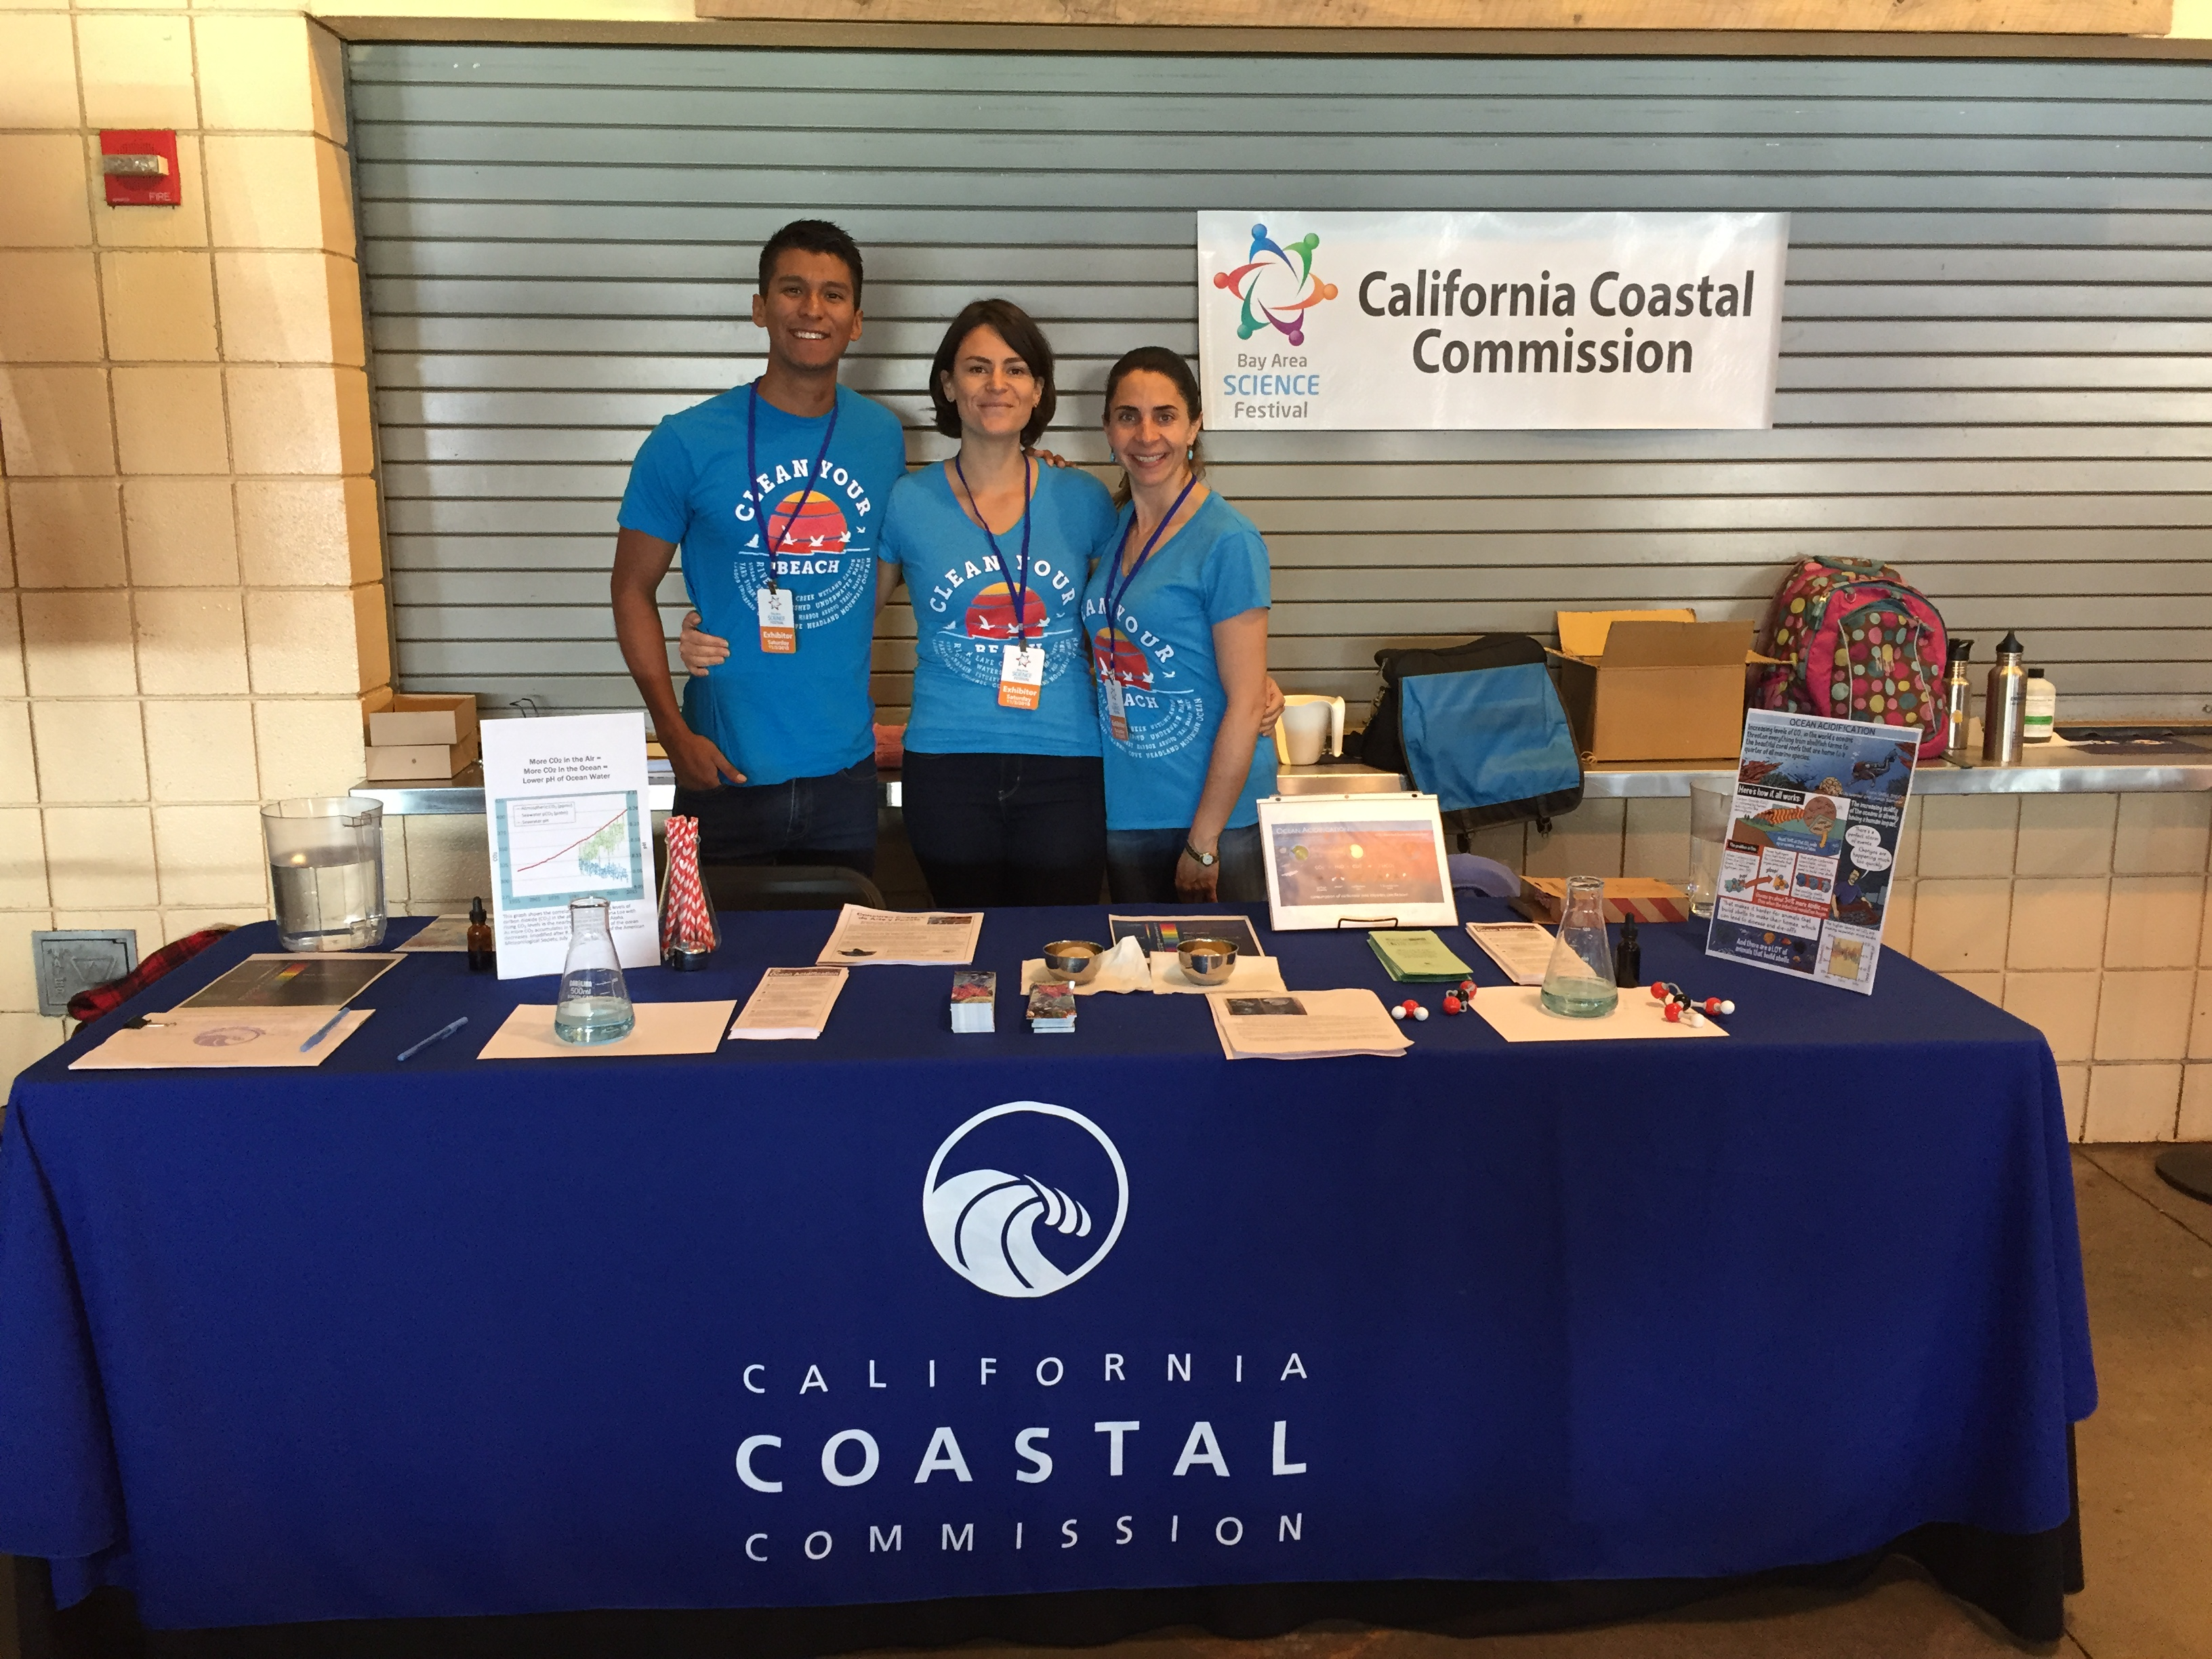 Coastal Commission staff at a Bay Area Science Festival. Courtesy photo